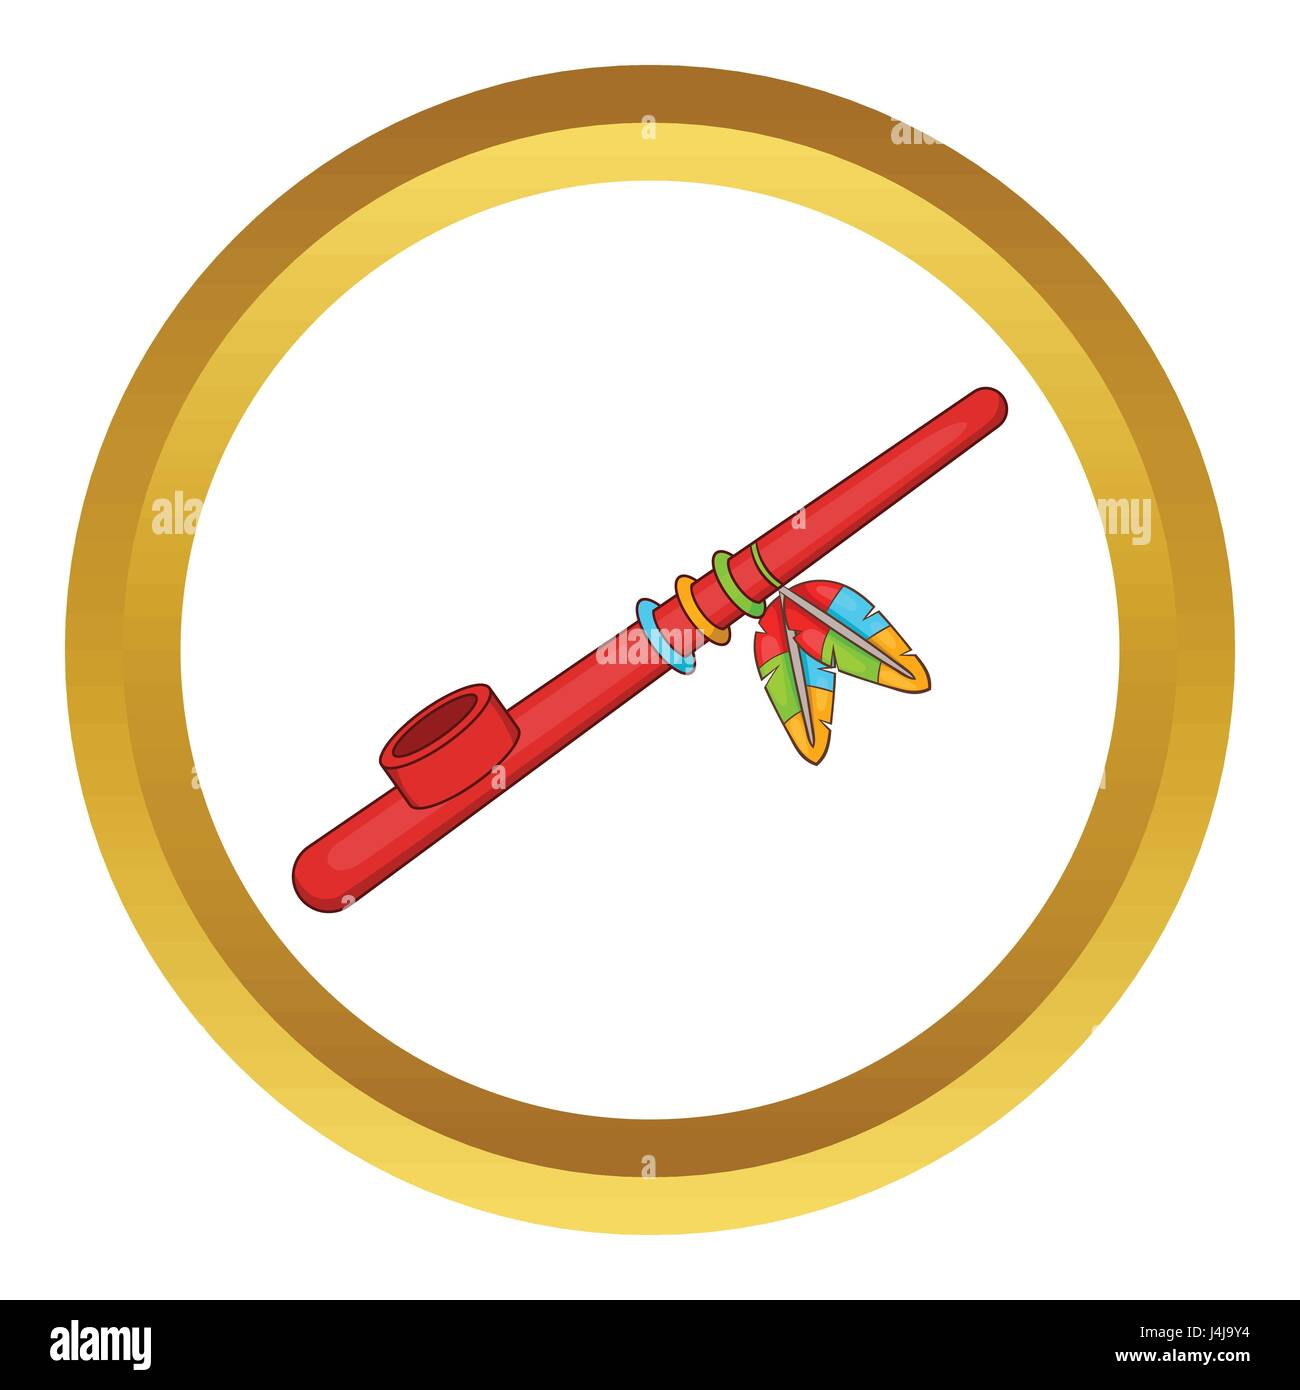 Indian Peace Pipe Vector Icon Stock Vector Art Illustration